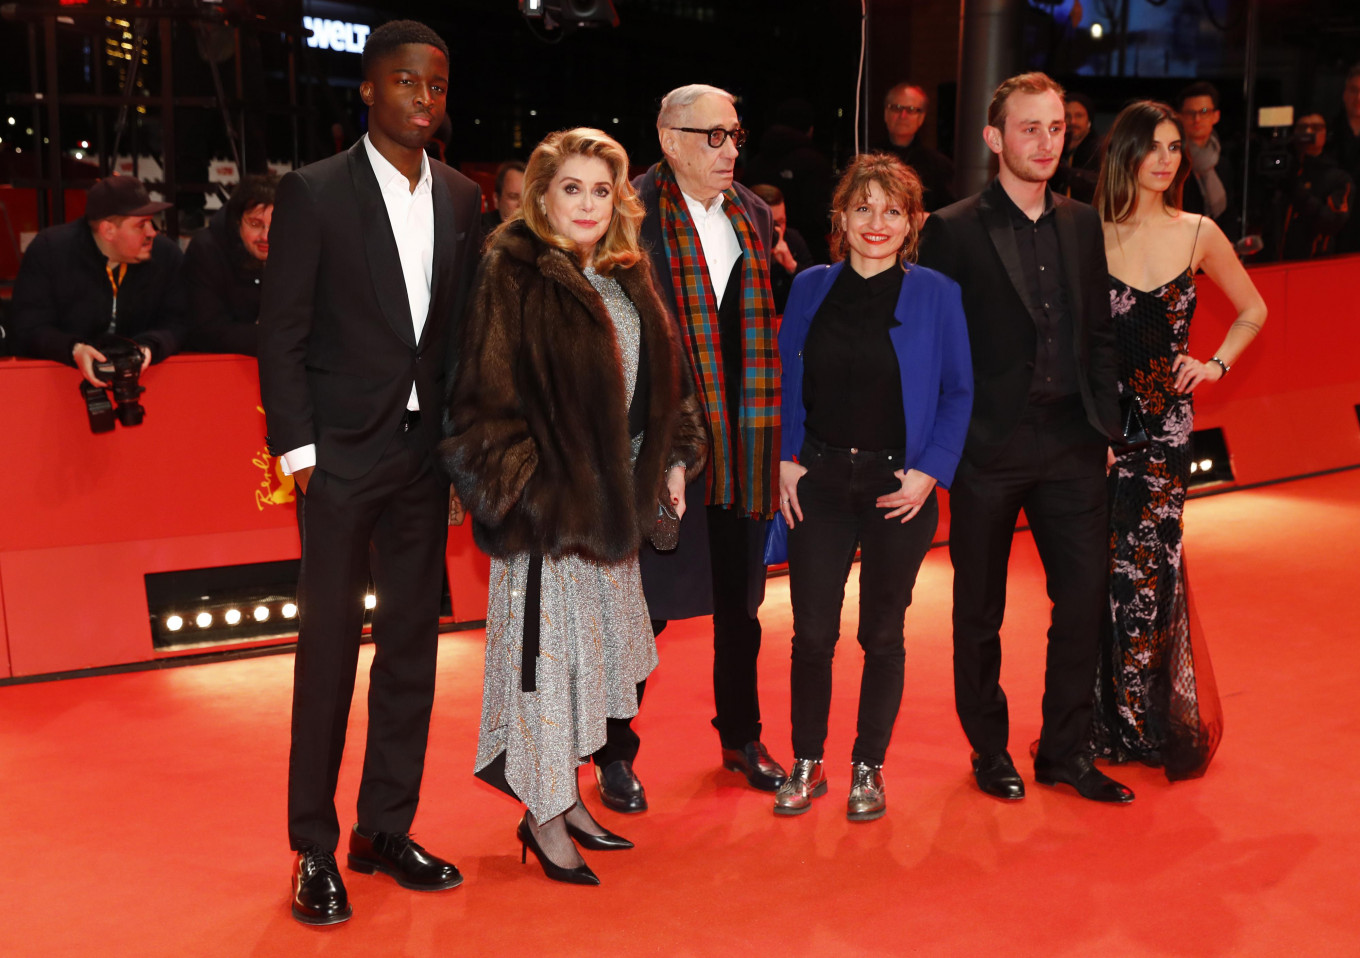 Catherine Deneuve's new film explores Islamist radicalization